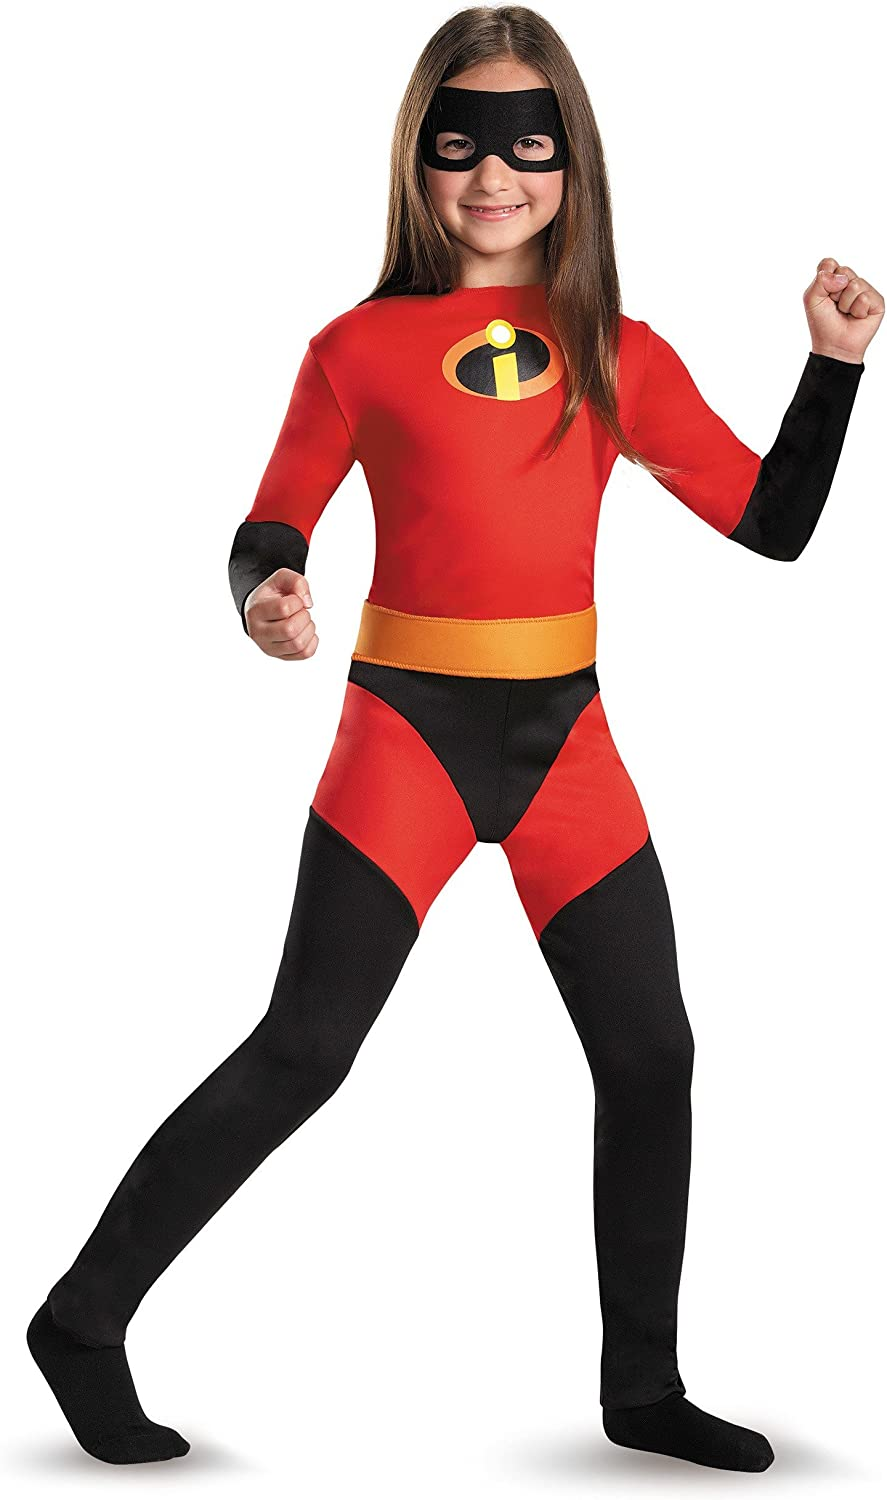 Amazon Com Disguise Kids Violet Incredibles Costume Medium Sizes 7 8 Toys Games